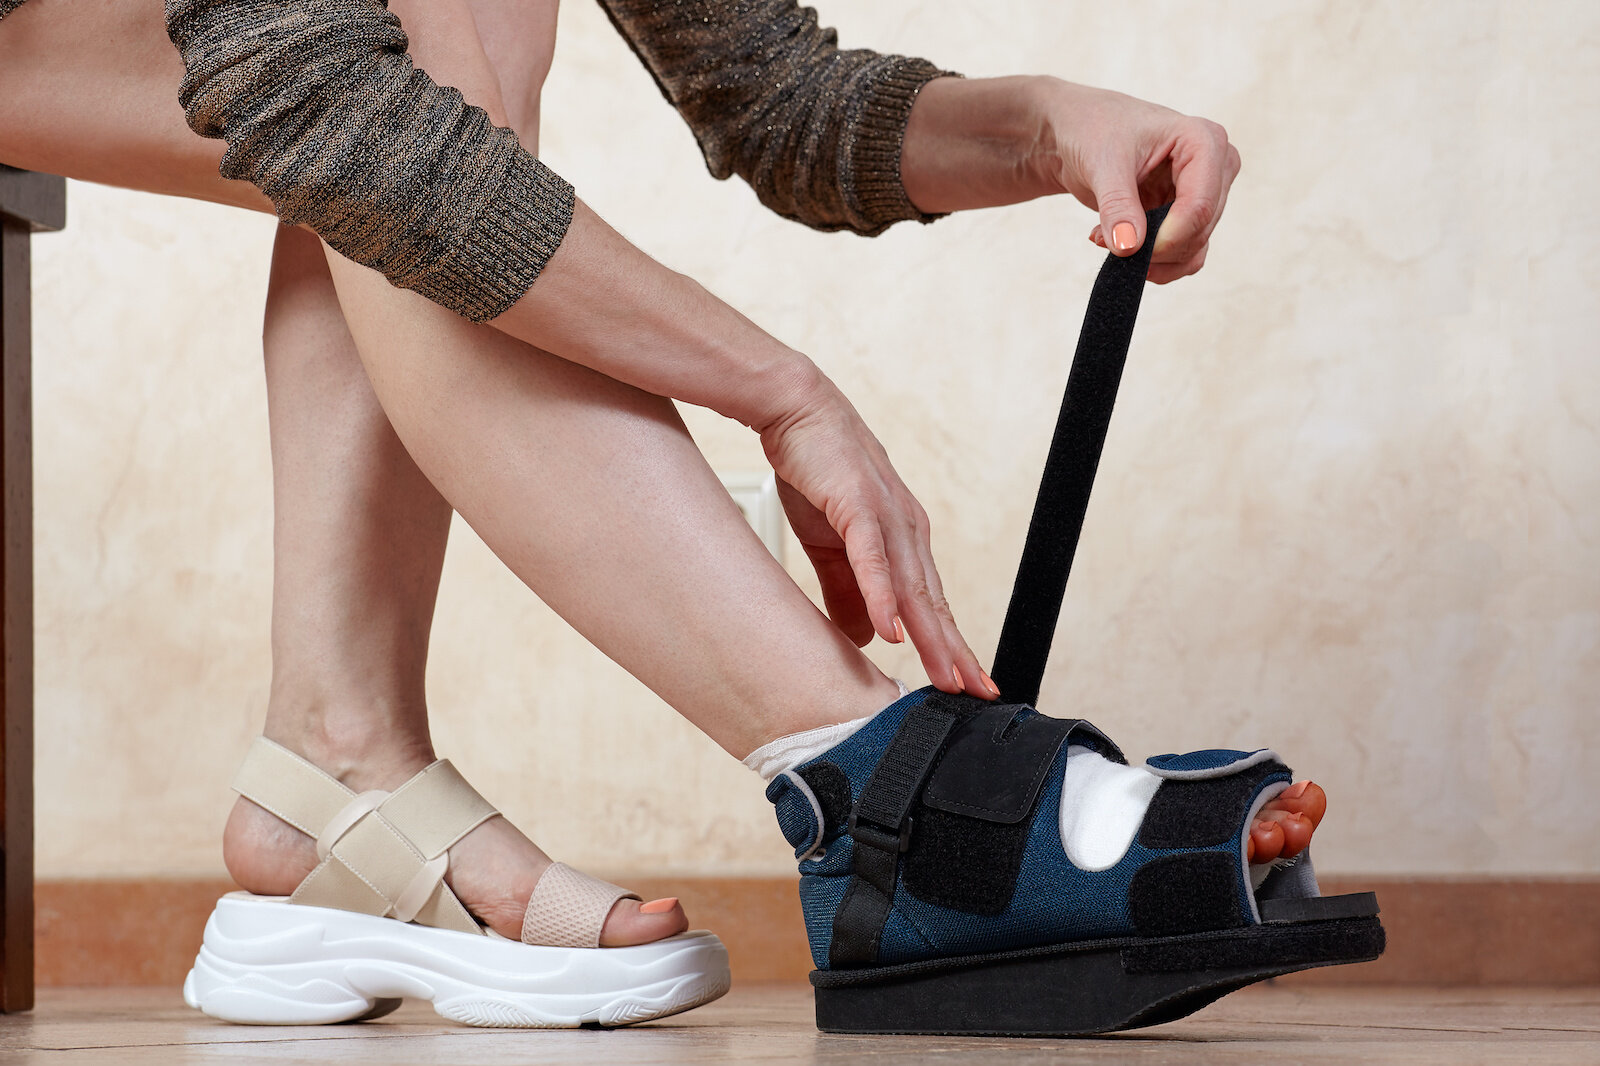 Bunion Surgery Recovery: What To Expect and How To Prepare — Snug Safety